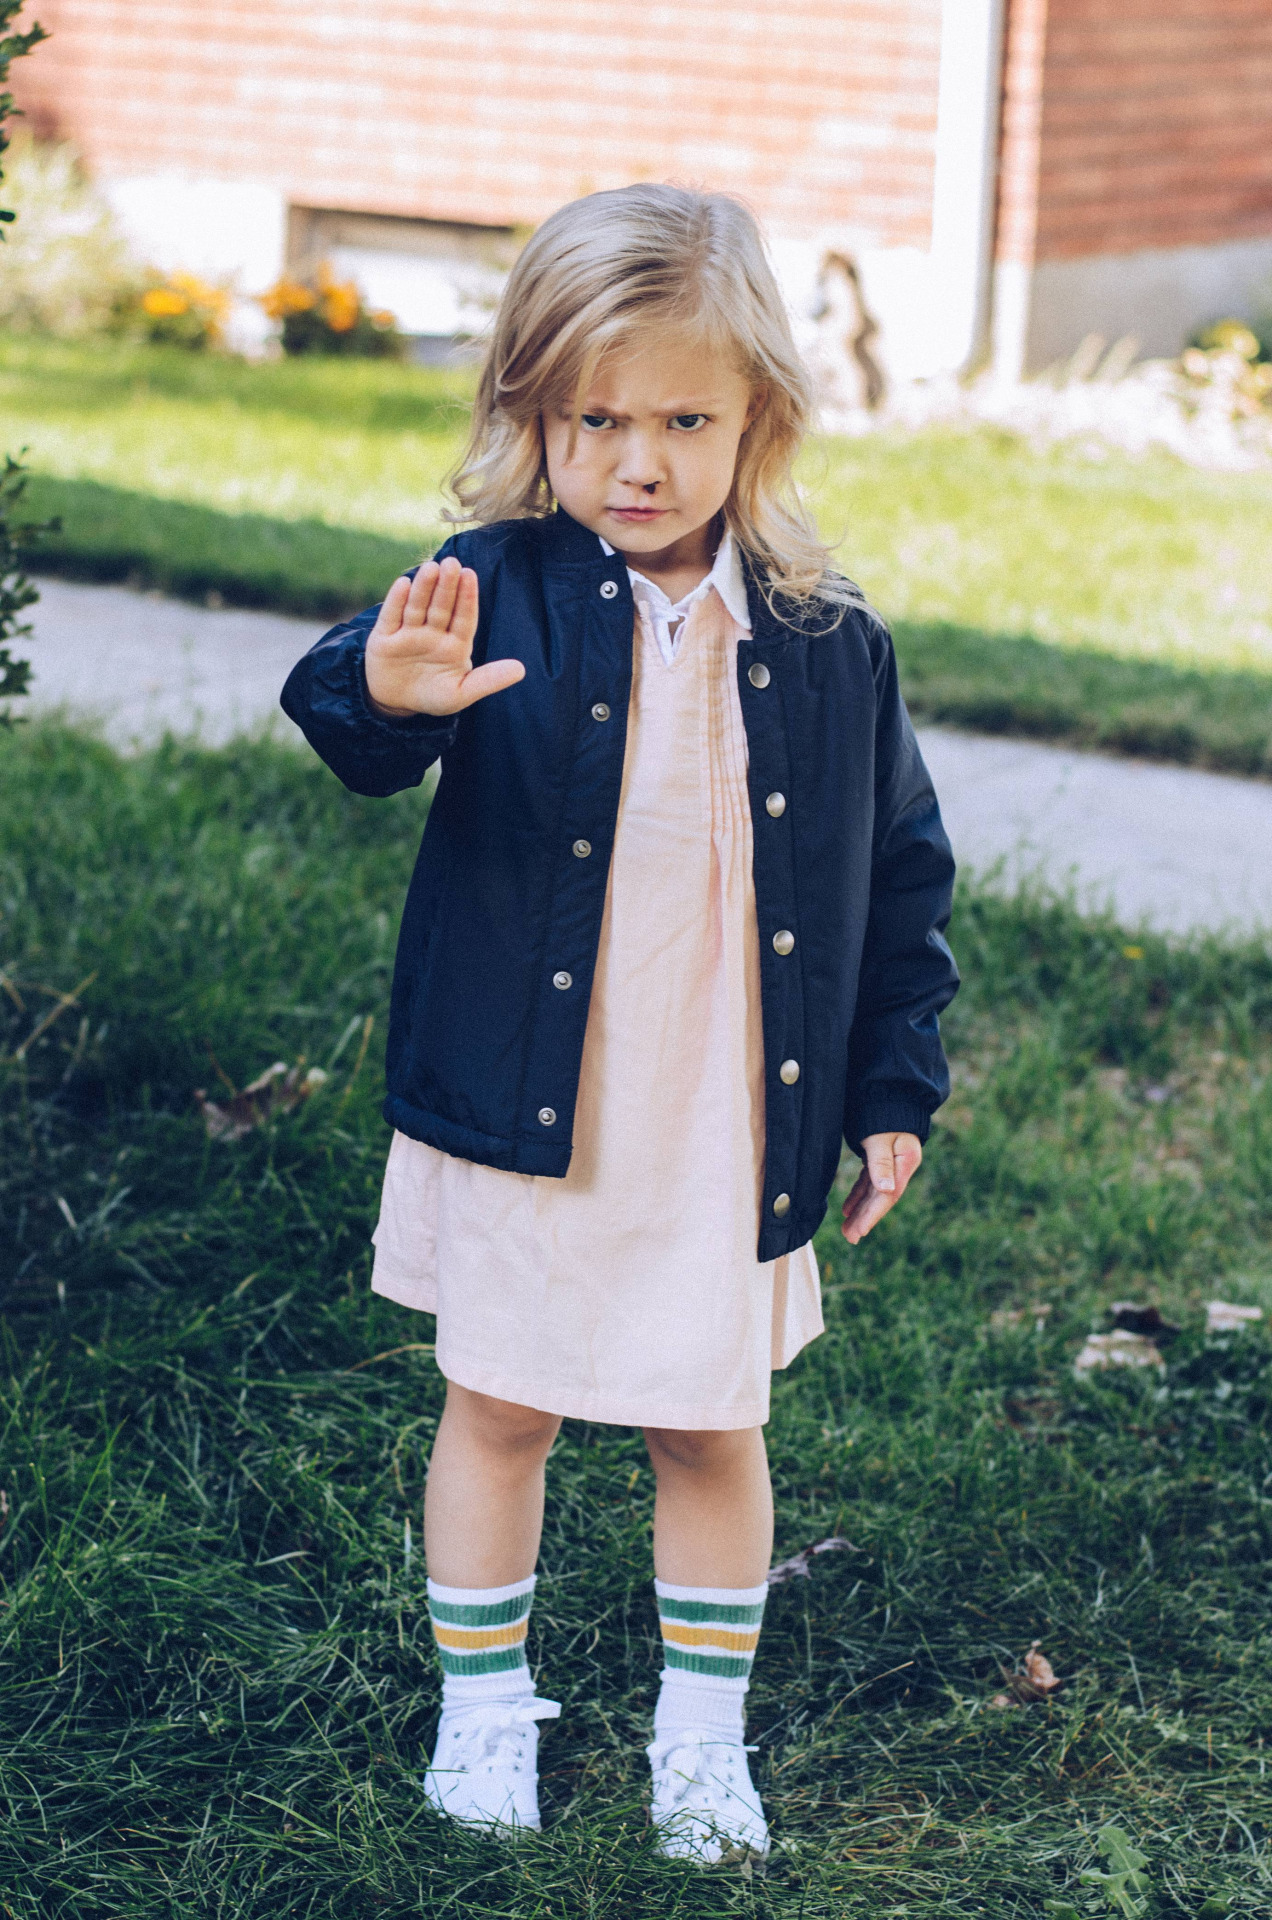 How To Make The Stranger Things Kids Costume For Halloween Brit Co